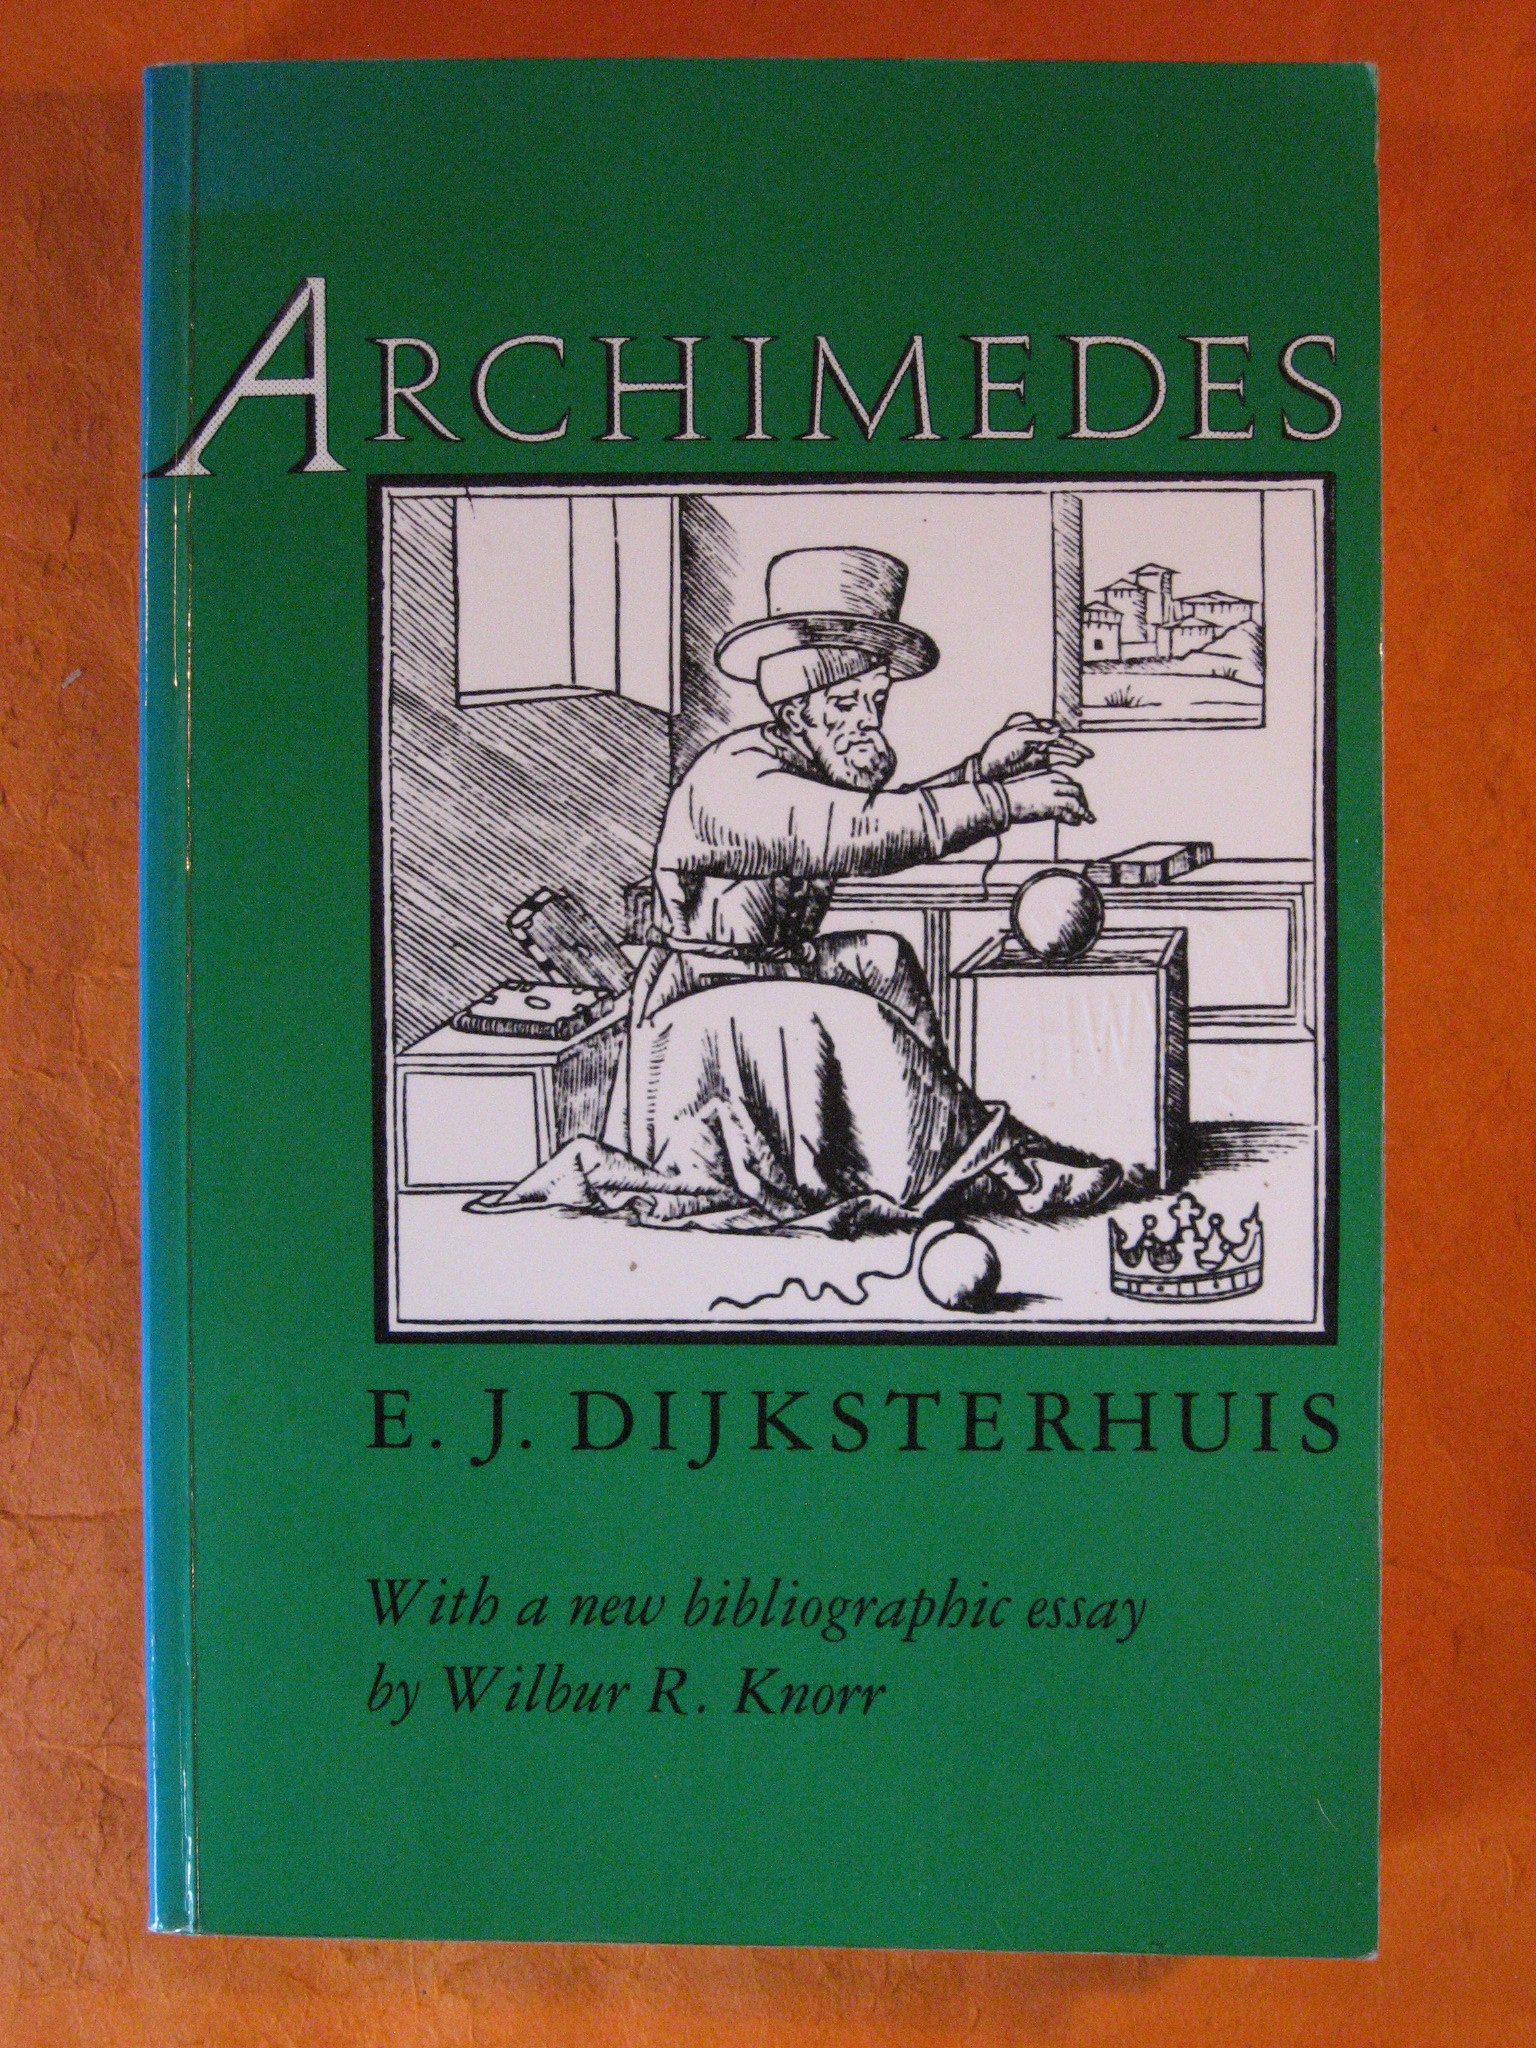 Archimedes, With a new bibliographic essay By Wilbur R. Knorr, Dijksterhuis, E. J.